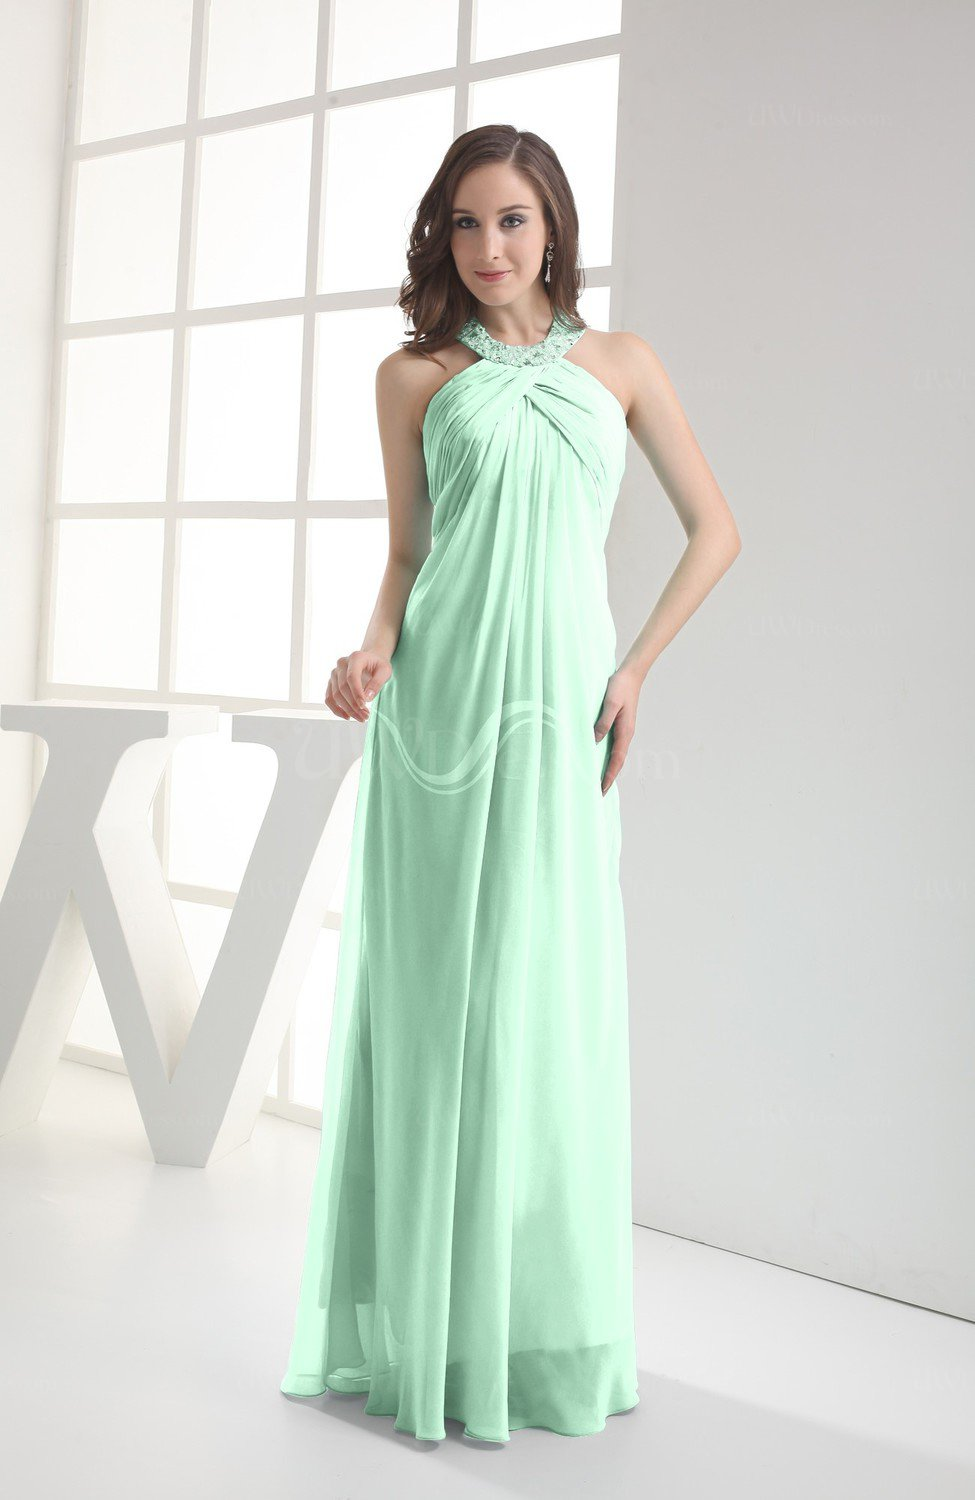 a520dda55c24 Honeydew Modest Sleeveless Backless Chiffon Floor Length Ruching Bridesmaid  Dresses (Style D80113). ColsBM Michelle Honeydew Simple A-line ...